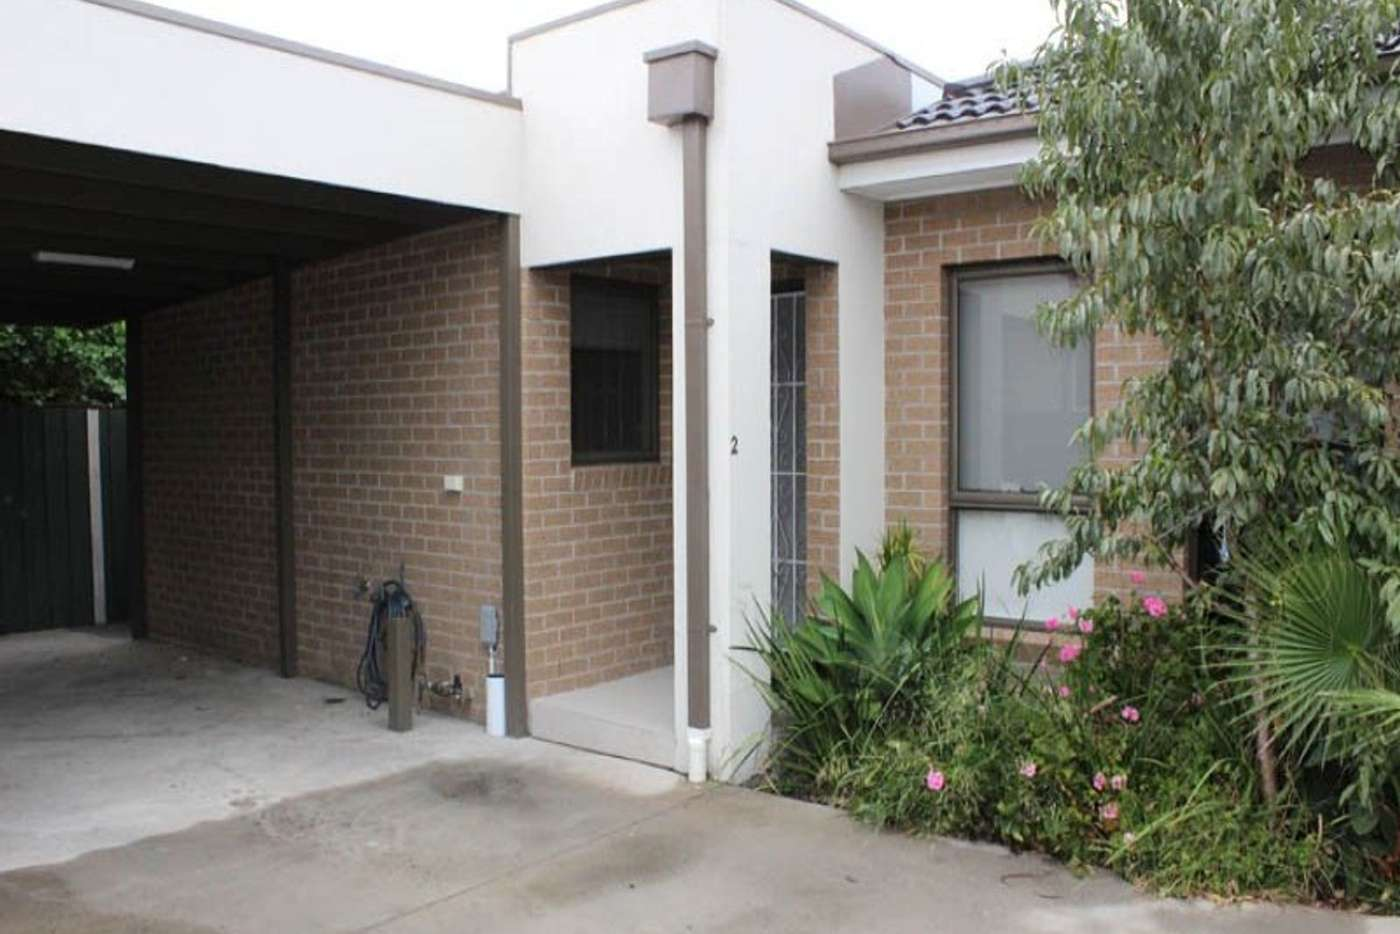 Main view of Homely house listing, 2/53 Mayne Street, Sunshine West VIC 3020